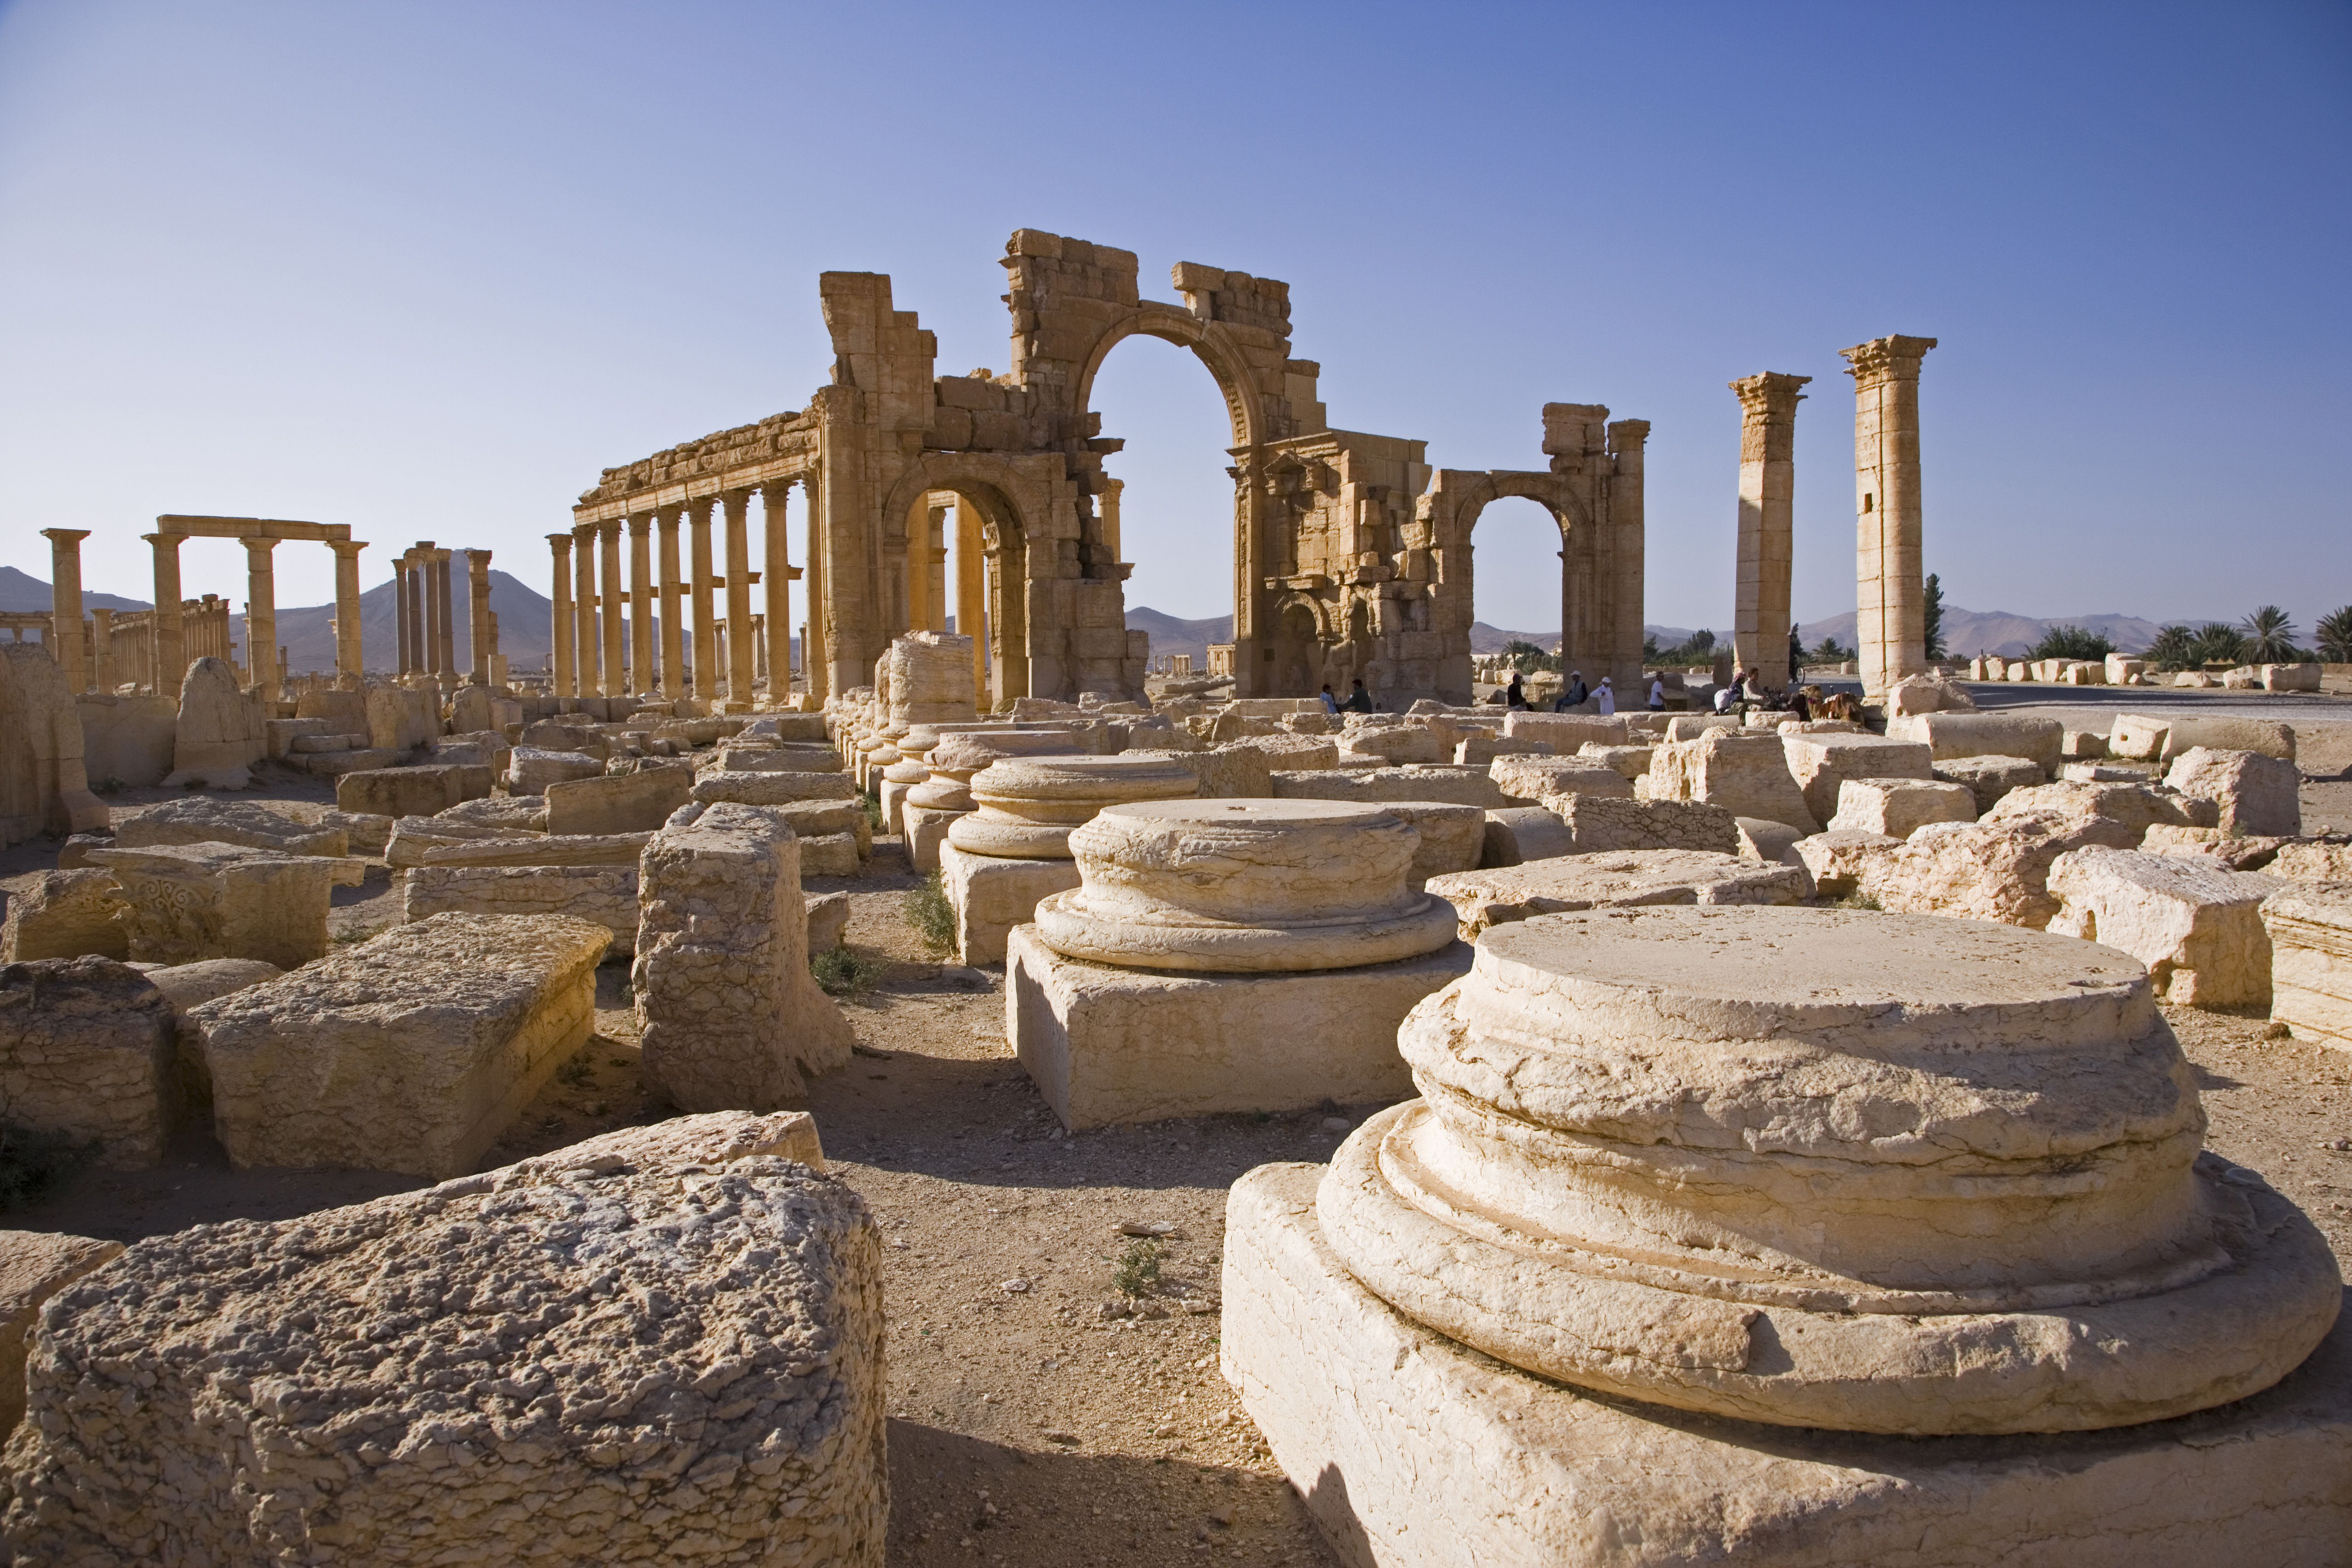 The spectacular ruined city of Palmyra, Syria. The city was at its height in the 3rd century AD but fell into decline when the Romans captured Queen Zenobia after she declared independence from Rome in 271.